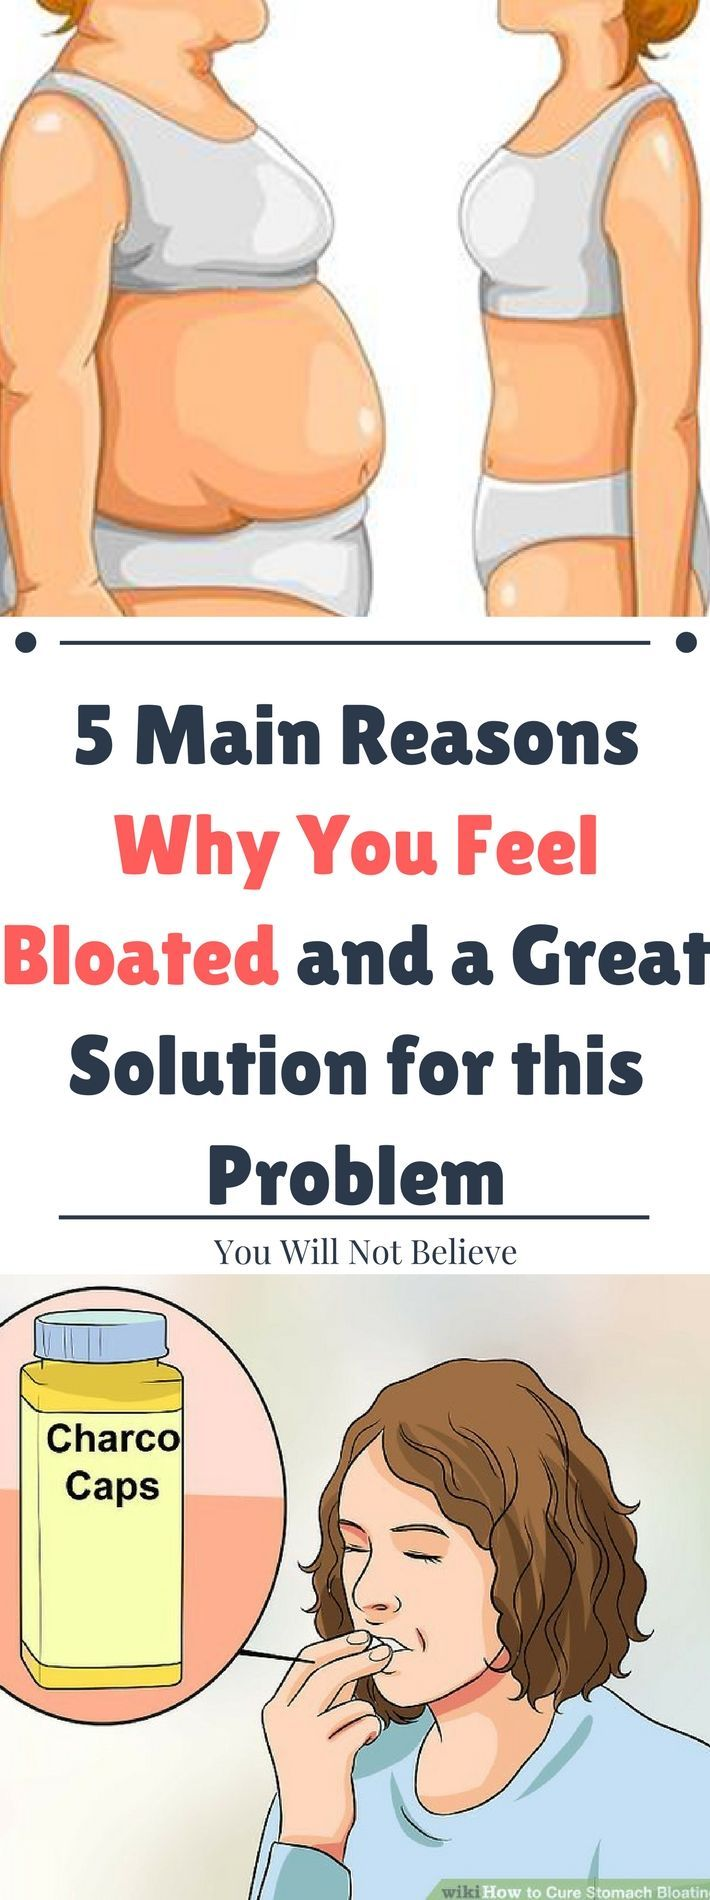 5 Main Reasons Why You Feel Bloated and a Great Solution for this Problem.. Read this carefully.!